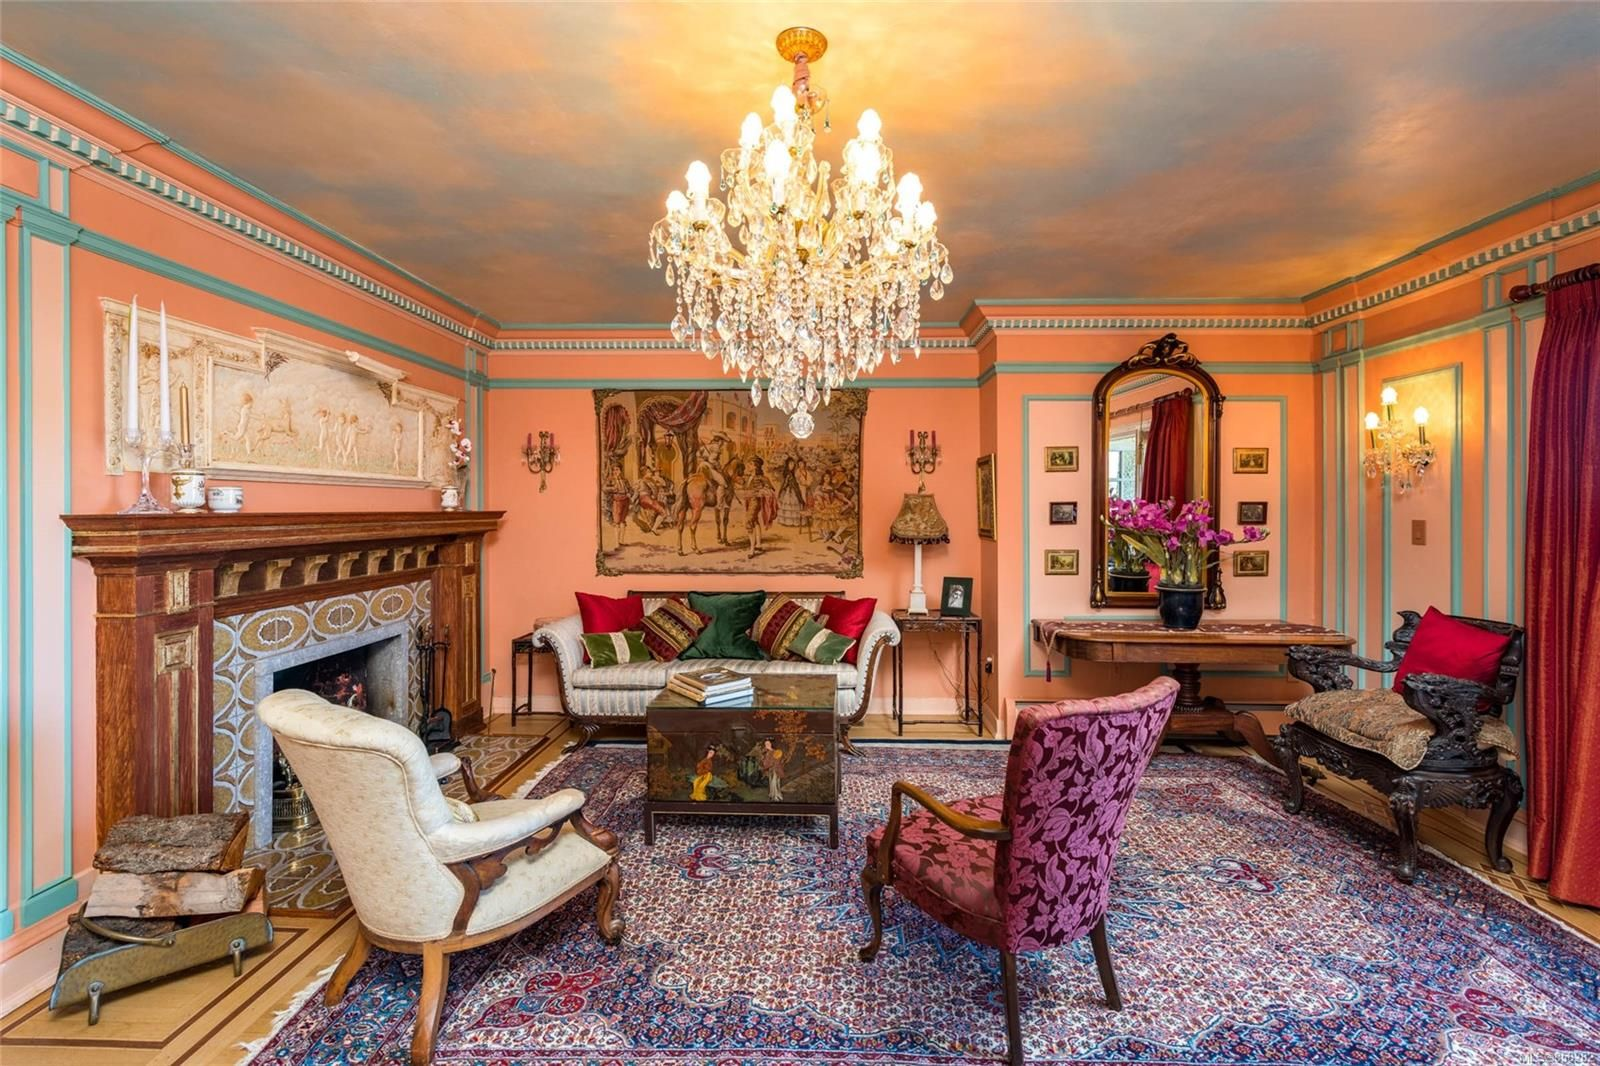 The expansive living room was once the original music room in the home when it was built in 1912.The main chandelier in the living room is Murano from Venice Italy, all hand cut crystal.